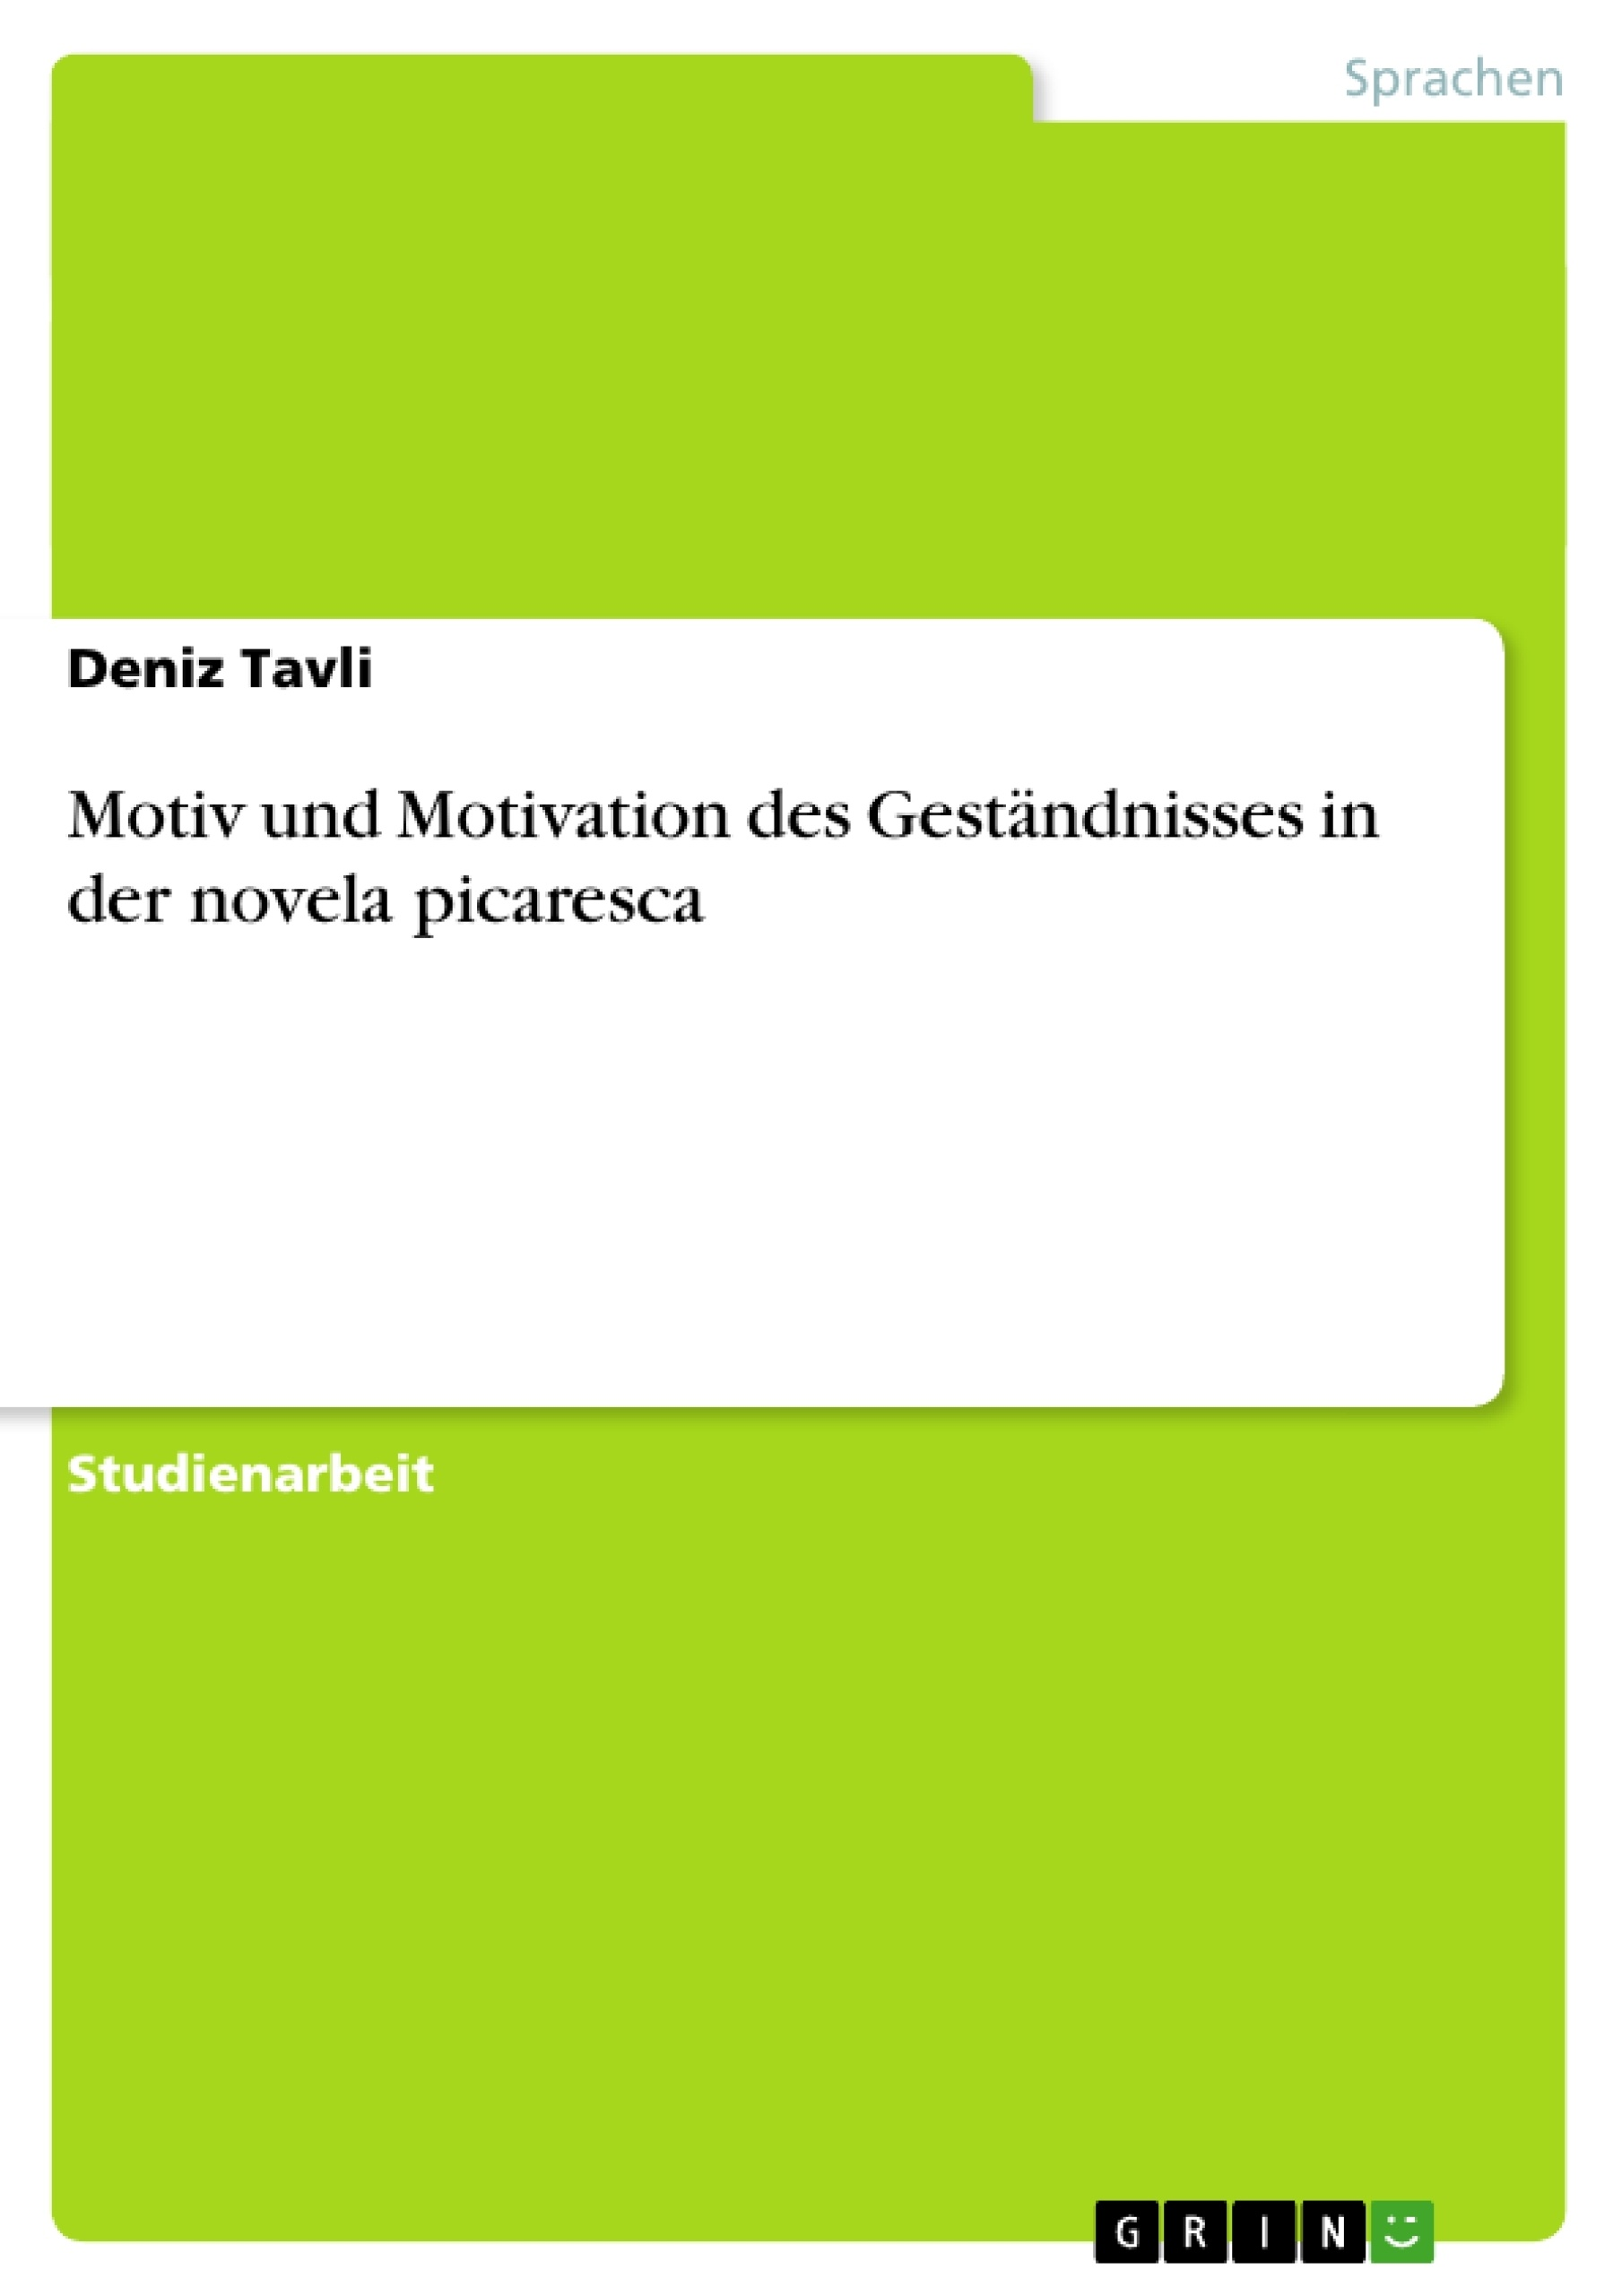 Titel: Motiv und Motivation des Geständnisses in der novela picaresca